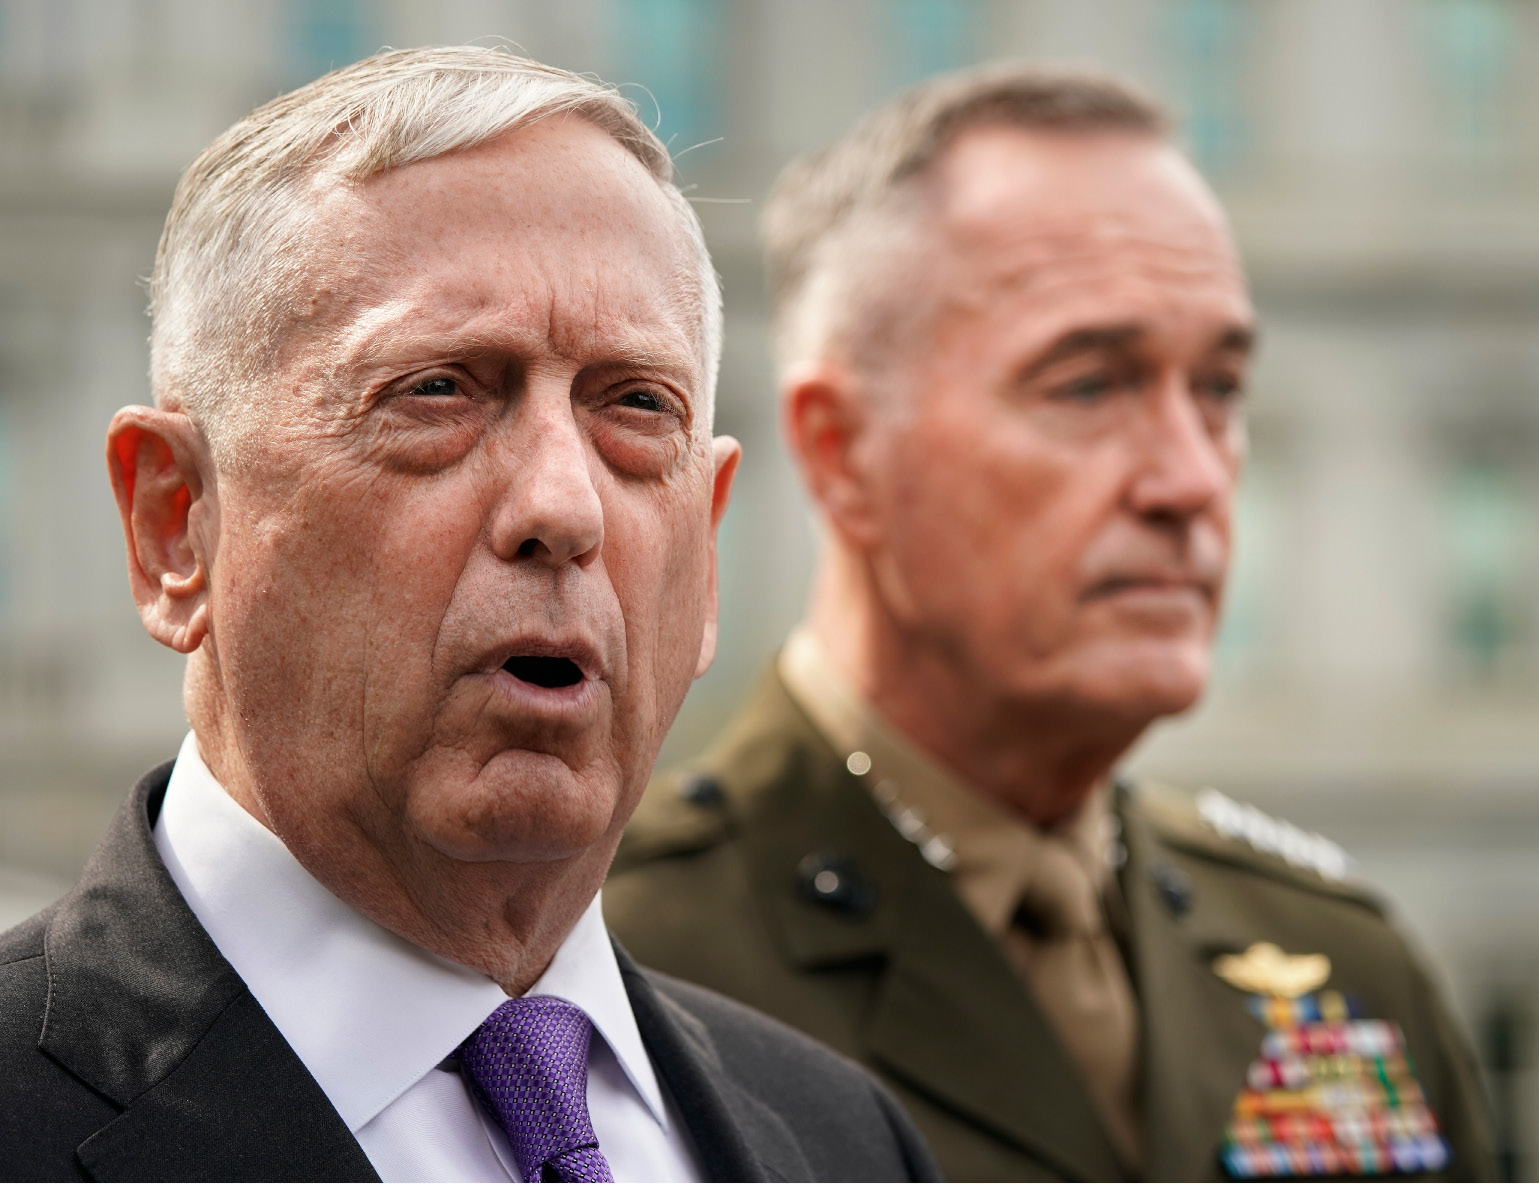 Defense Secretary Jim Mattis, left, accompanied by Joint Chiefs Chairman Gen. Joseph Dunford, right, speaks to members of the media outside the West Wing of the White House in Washington, Sunday, Sept. 3, 2017, regarding the escalating crisis in North Korea